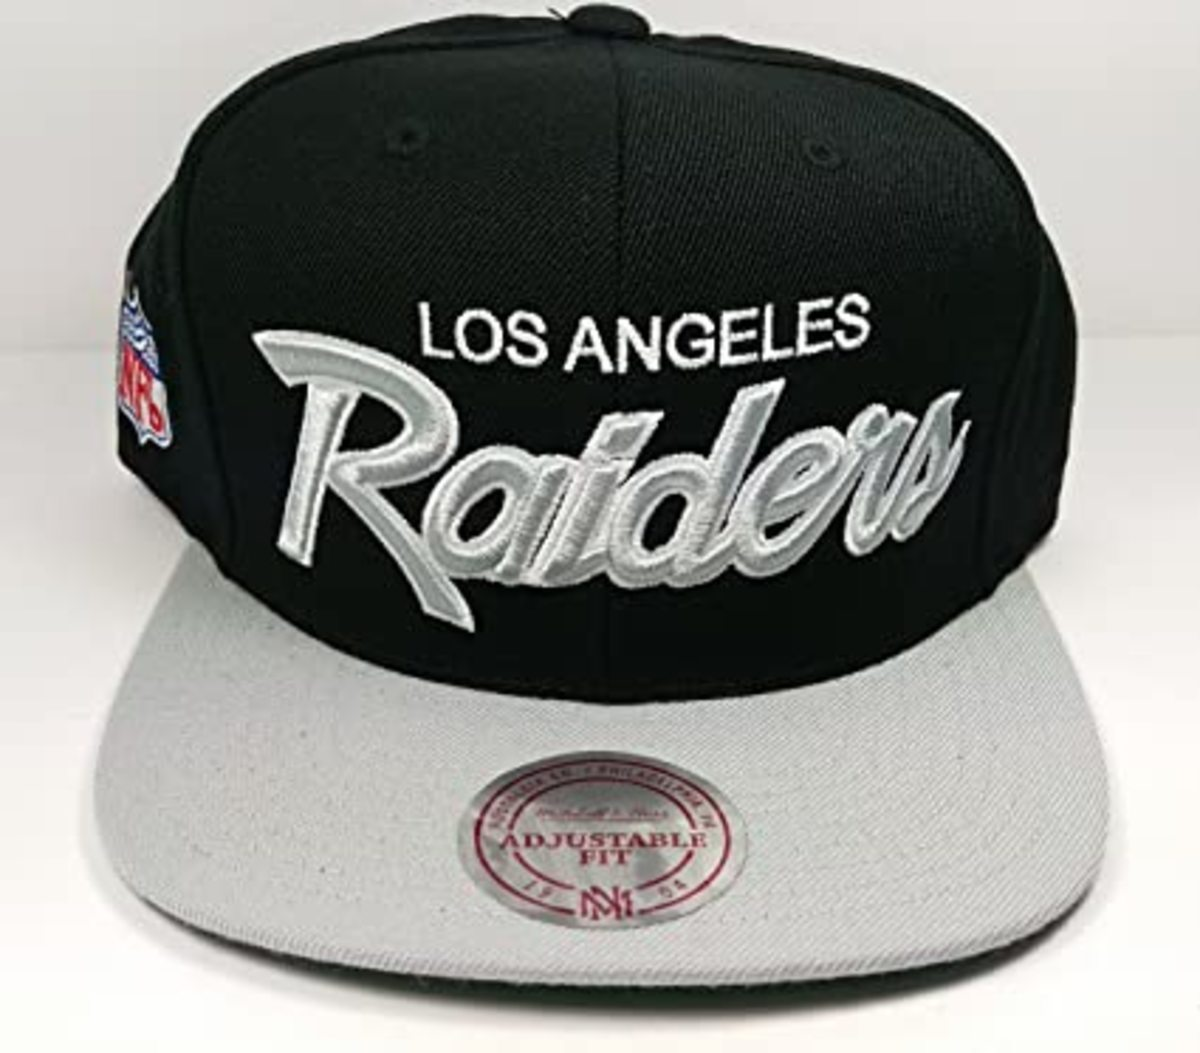 In 1984, the Los Angeles Raiders were the Super Bowl champs.